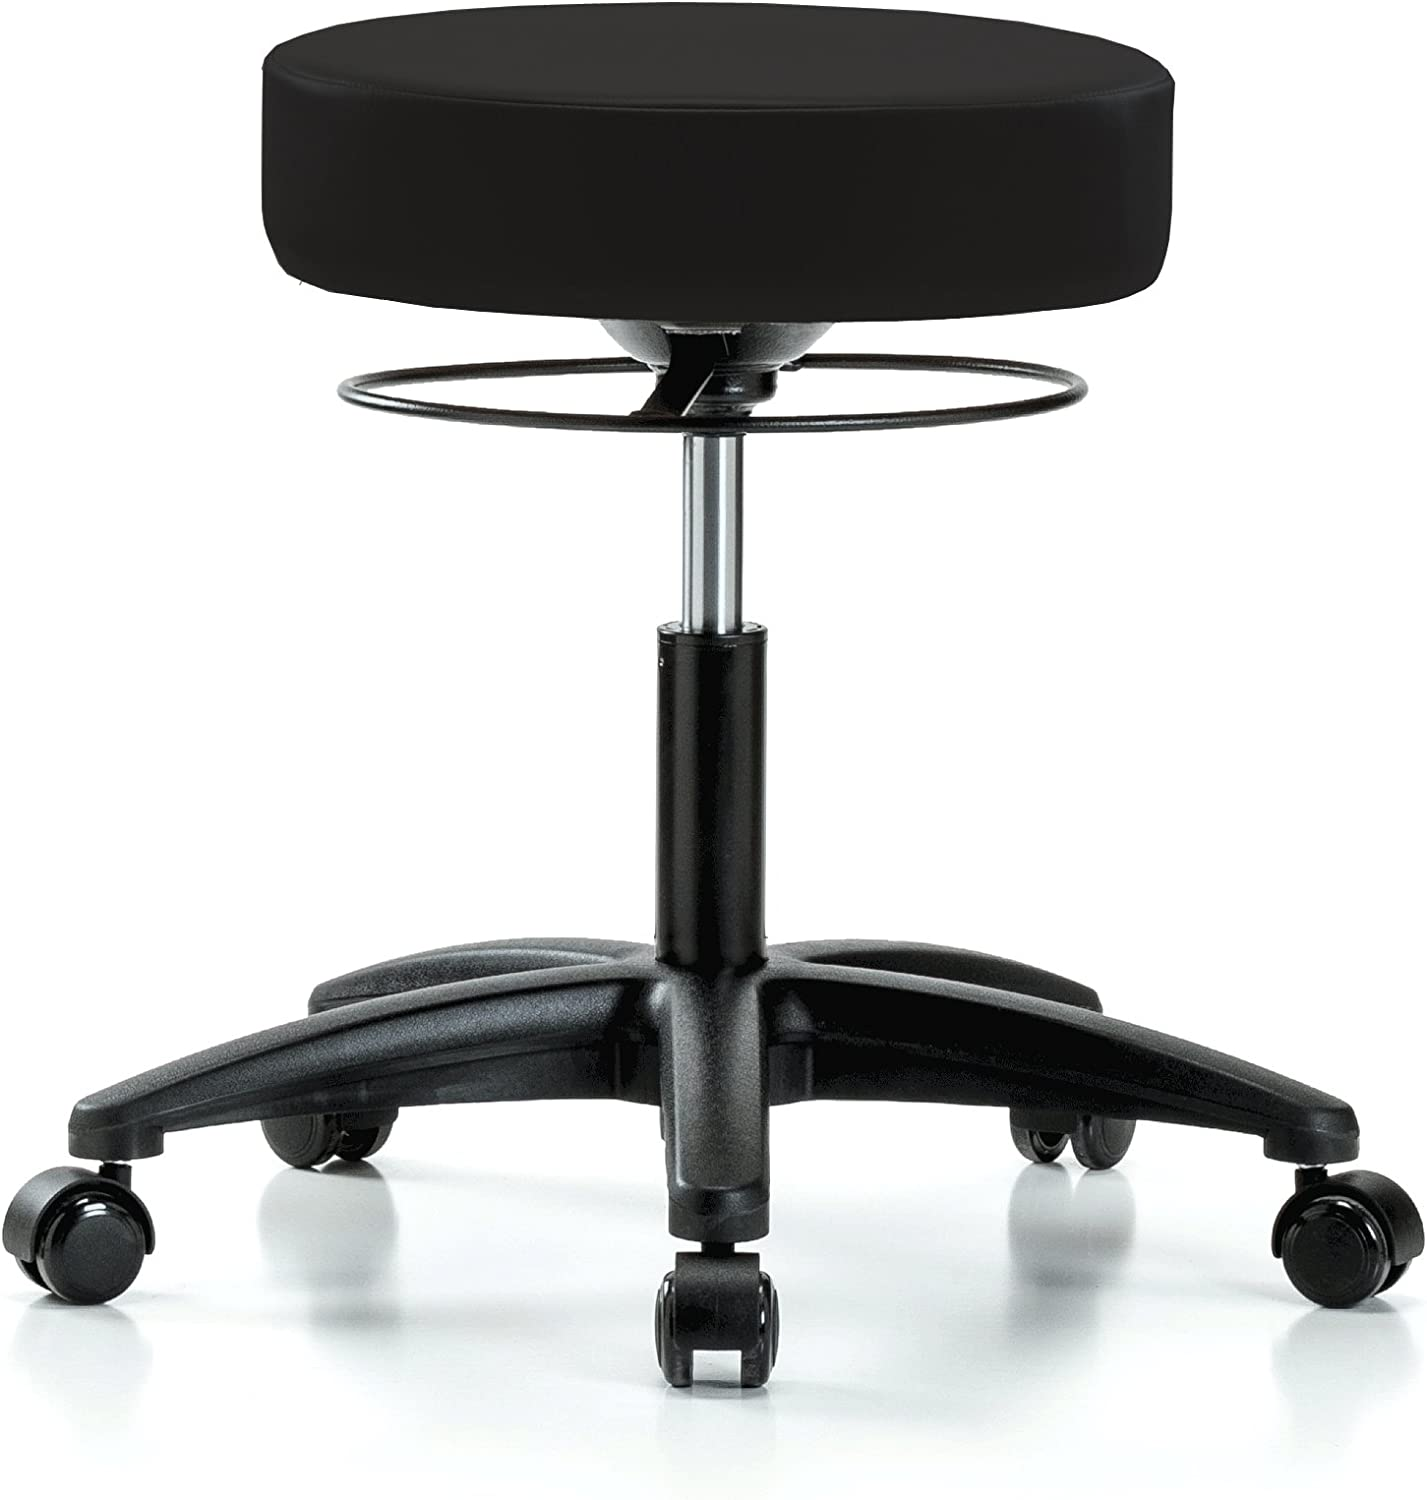 PERCH Stella Rolling Height Adjustable Salon Spa Stool for Hardwood or Tile Desk Height 18.5-24 Inches 300-Pound Weight Capacity 12 Year Warranty Black Vinyl